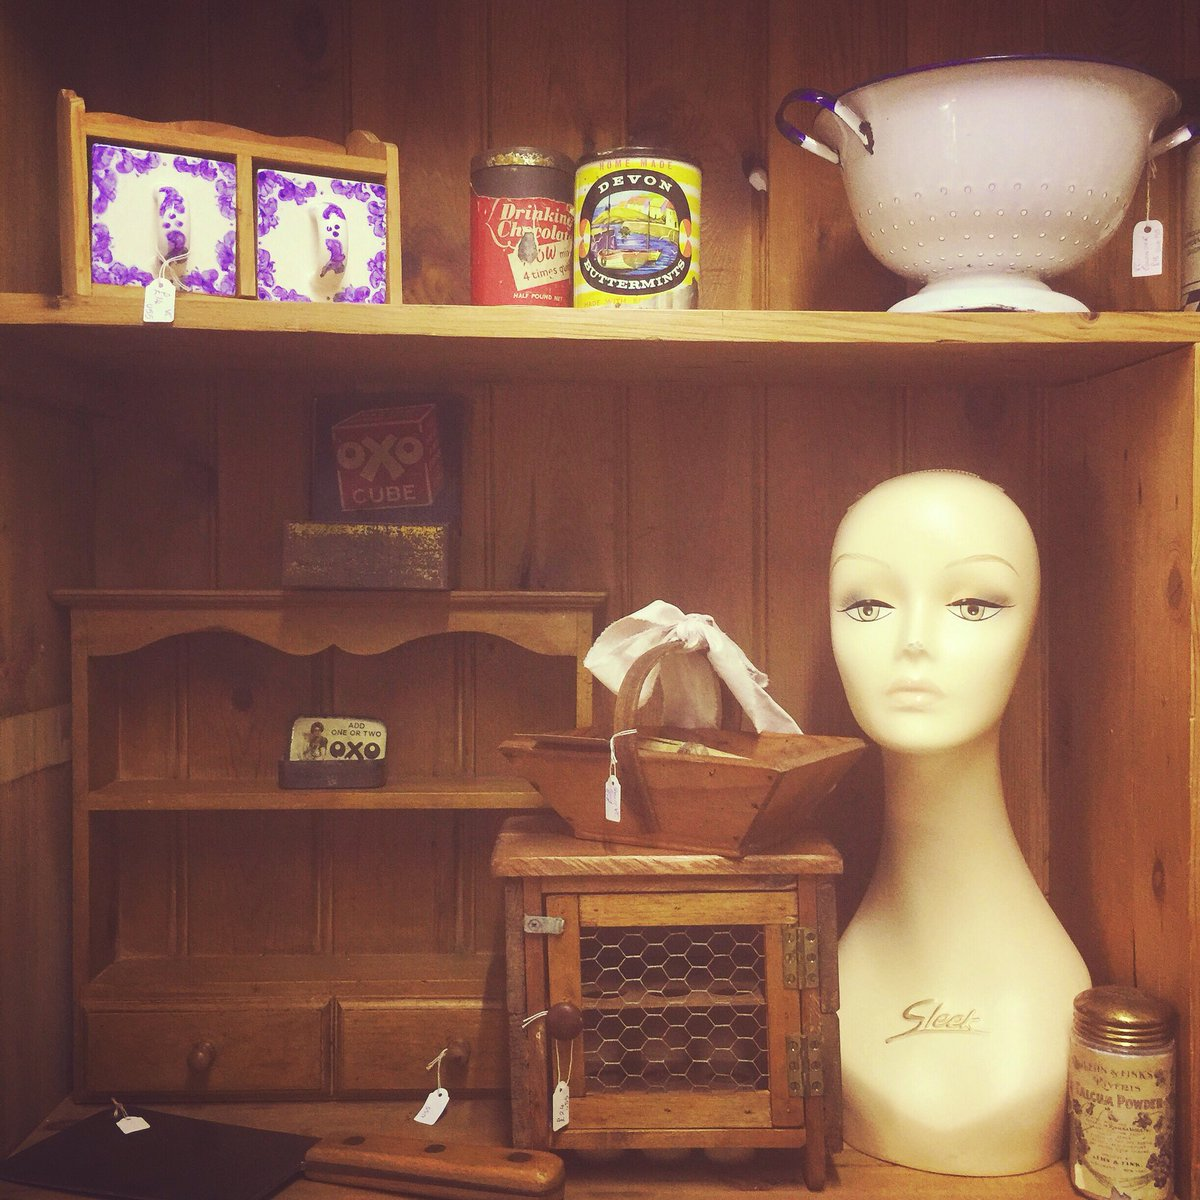 Good morning! What a lousy weather day! We are open until 5pm with so much to see you will need a refreshment break in our Decodence cafe 😉 #comesayhello #antiqueshunting #sunday #astraantiquescentre #hemswell #lincolnshire #vintage #countrykitchen #oldpine #shopdisplay https://t.co/B7oZvVtAoi